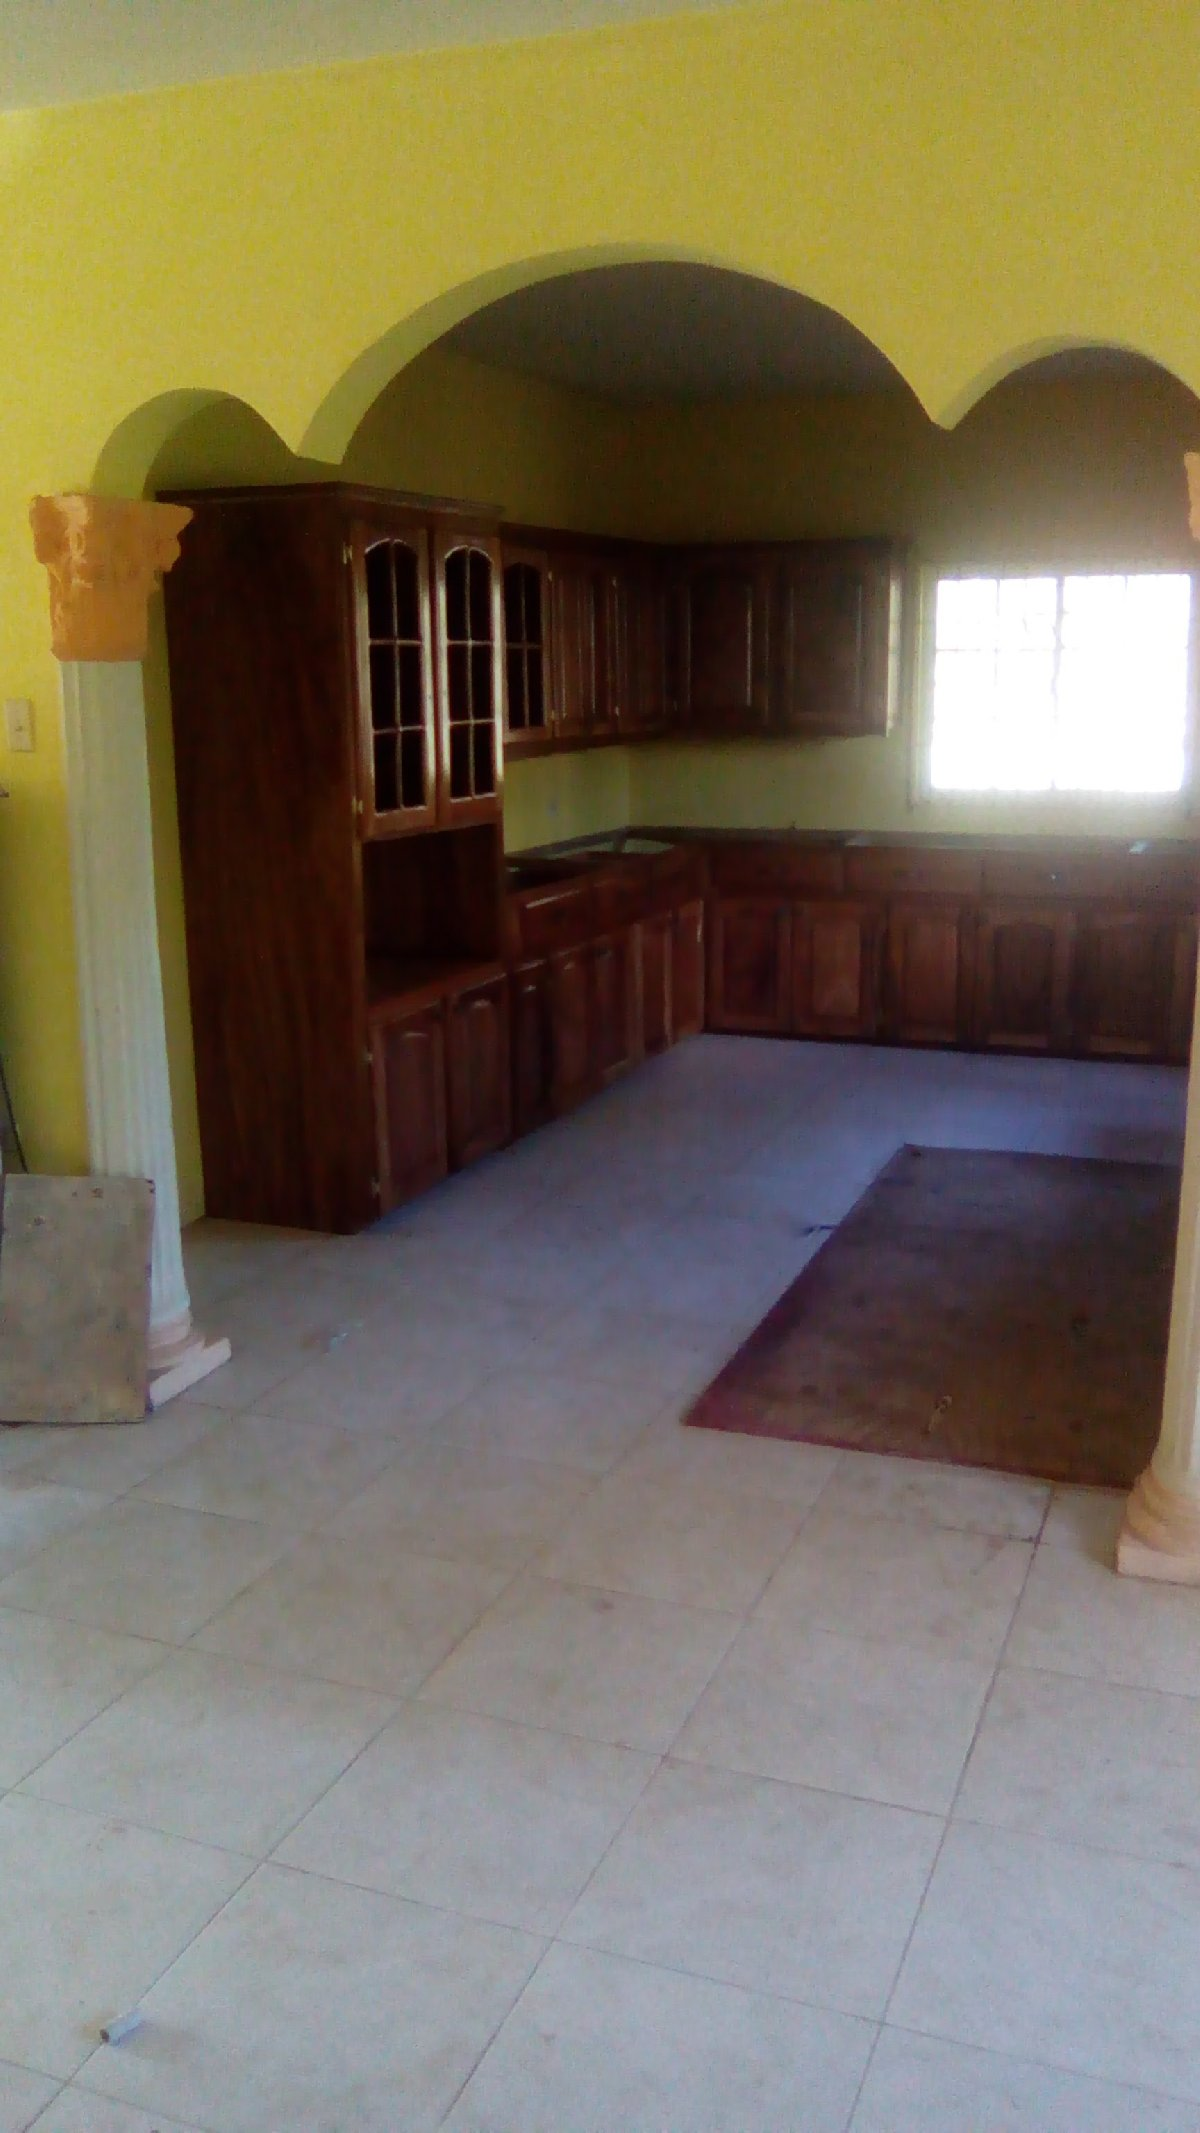 7 Bedroom 4 Bathroom House Recently Built For Sale In